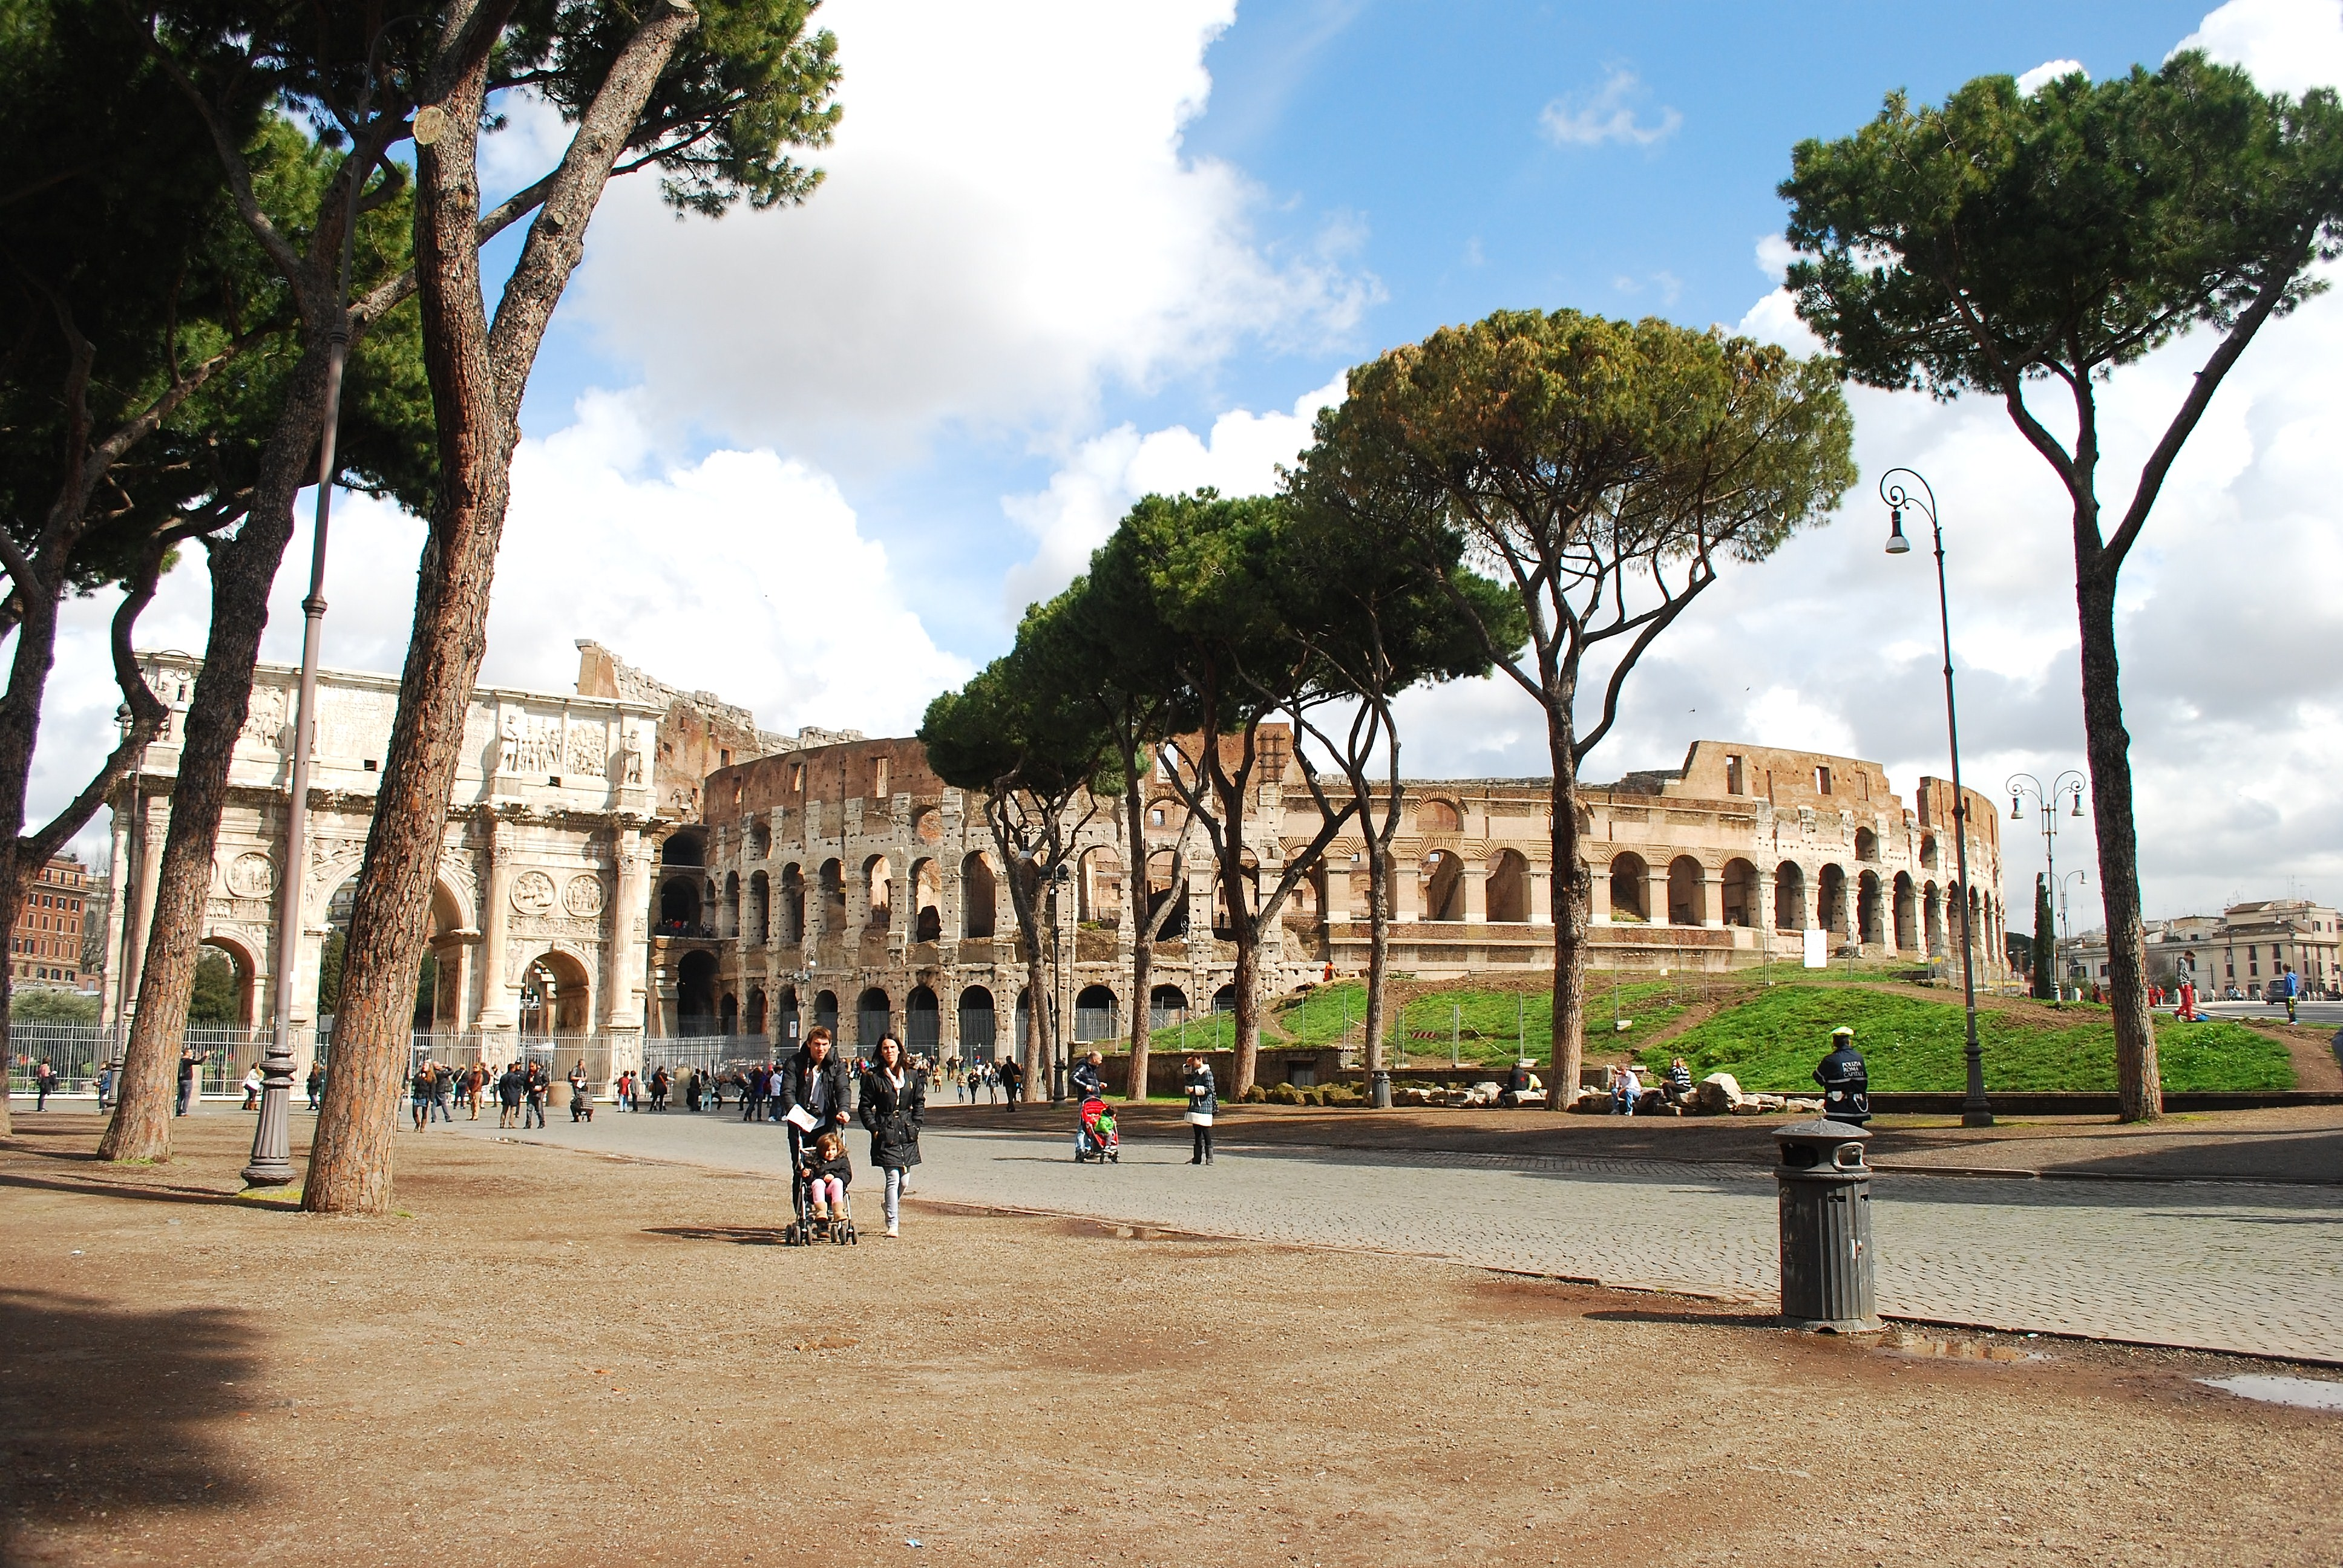 Roman Art And Architecture View of the Colosseum ...